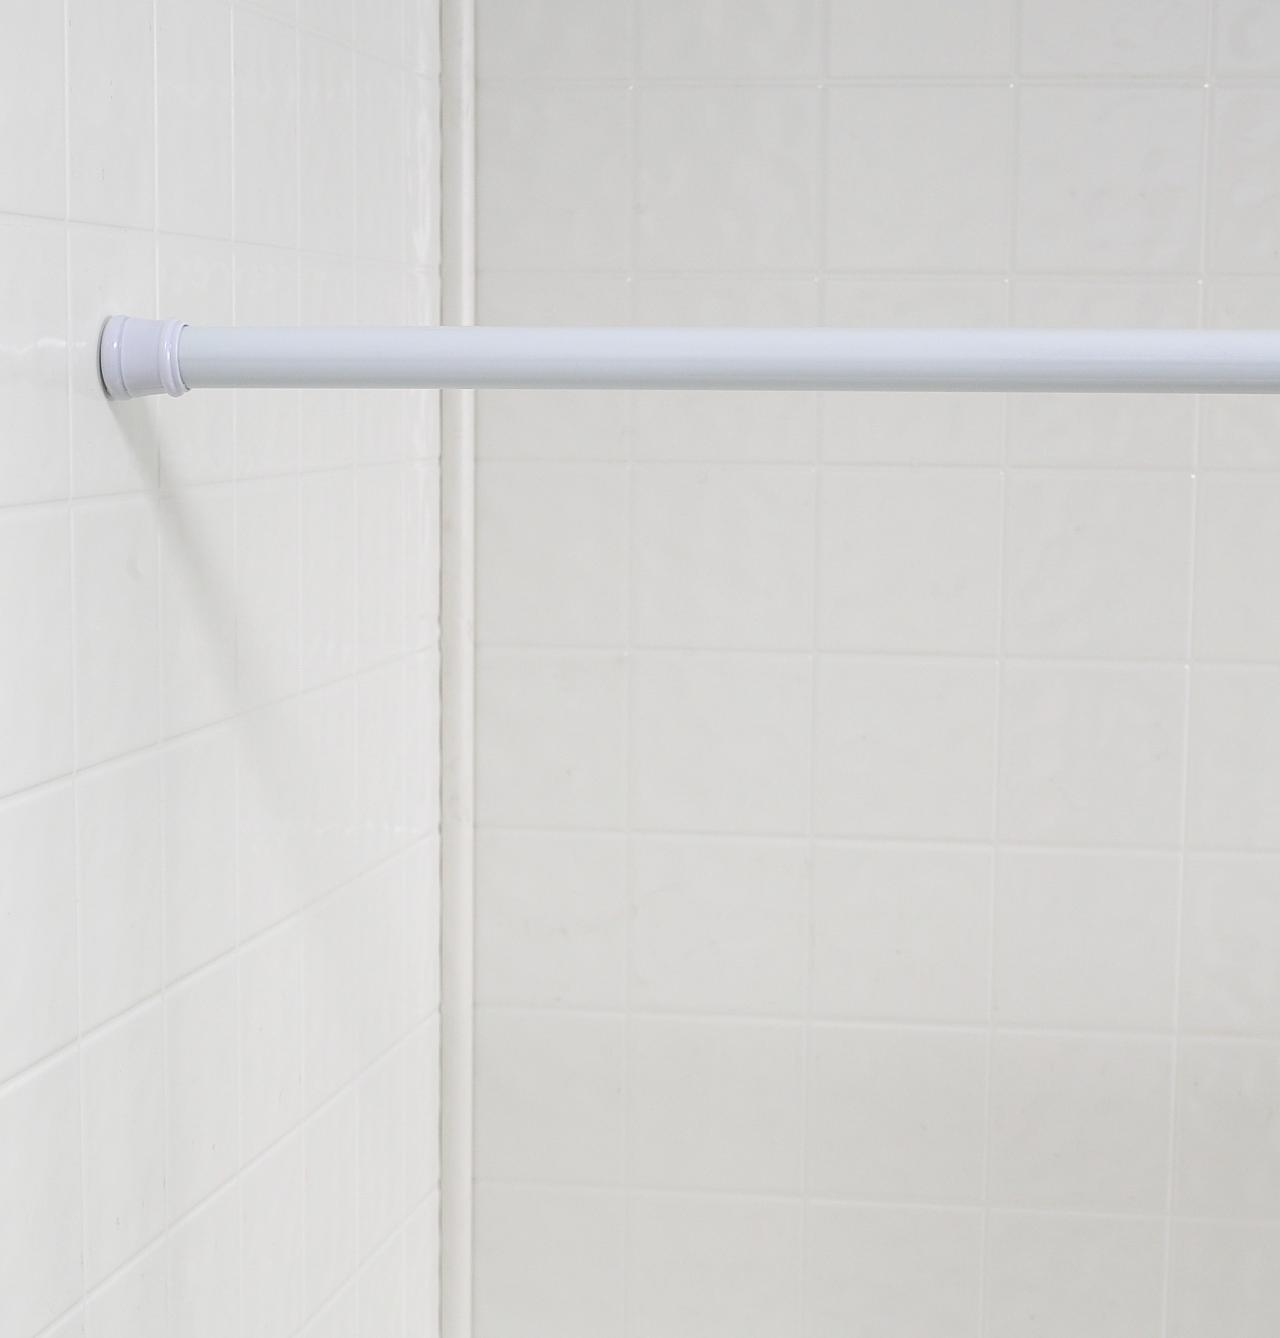 Exciting Bathroom Decor Ideas with Shower Curtain Tension Rod: Shower Curtain Tension Rod | Shower Rod Tension | Shower Curtains For Curved Rods